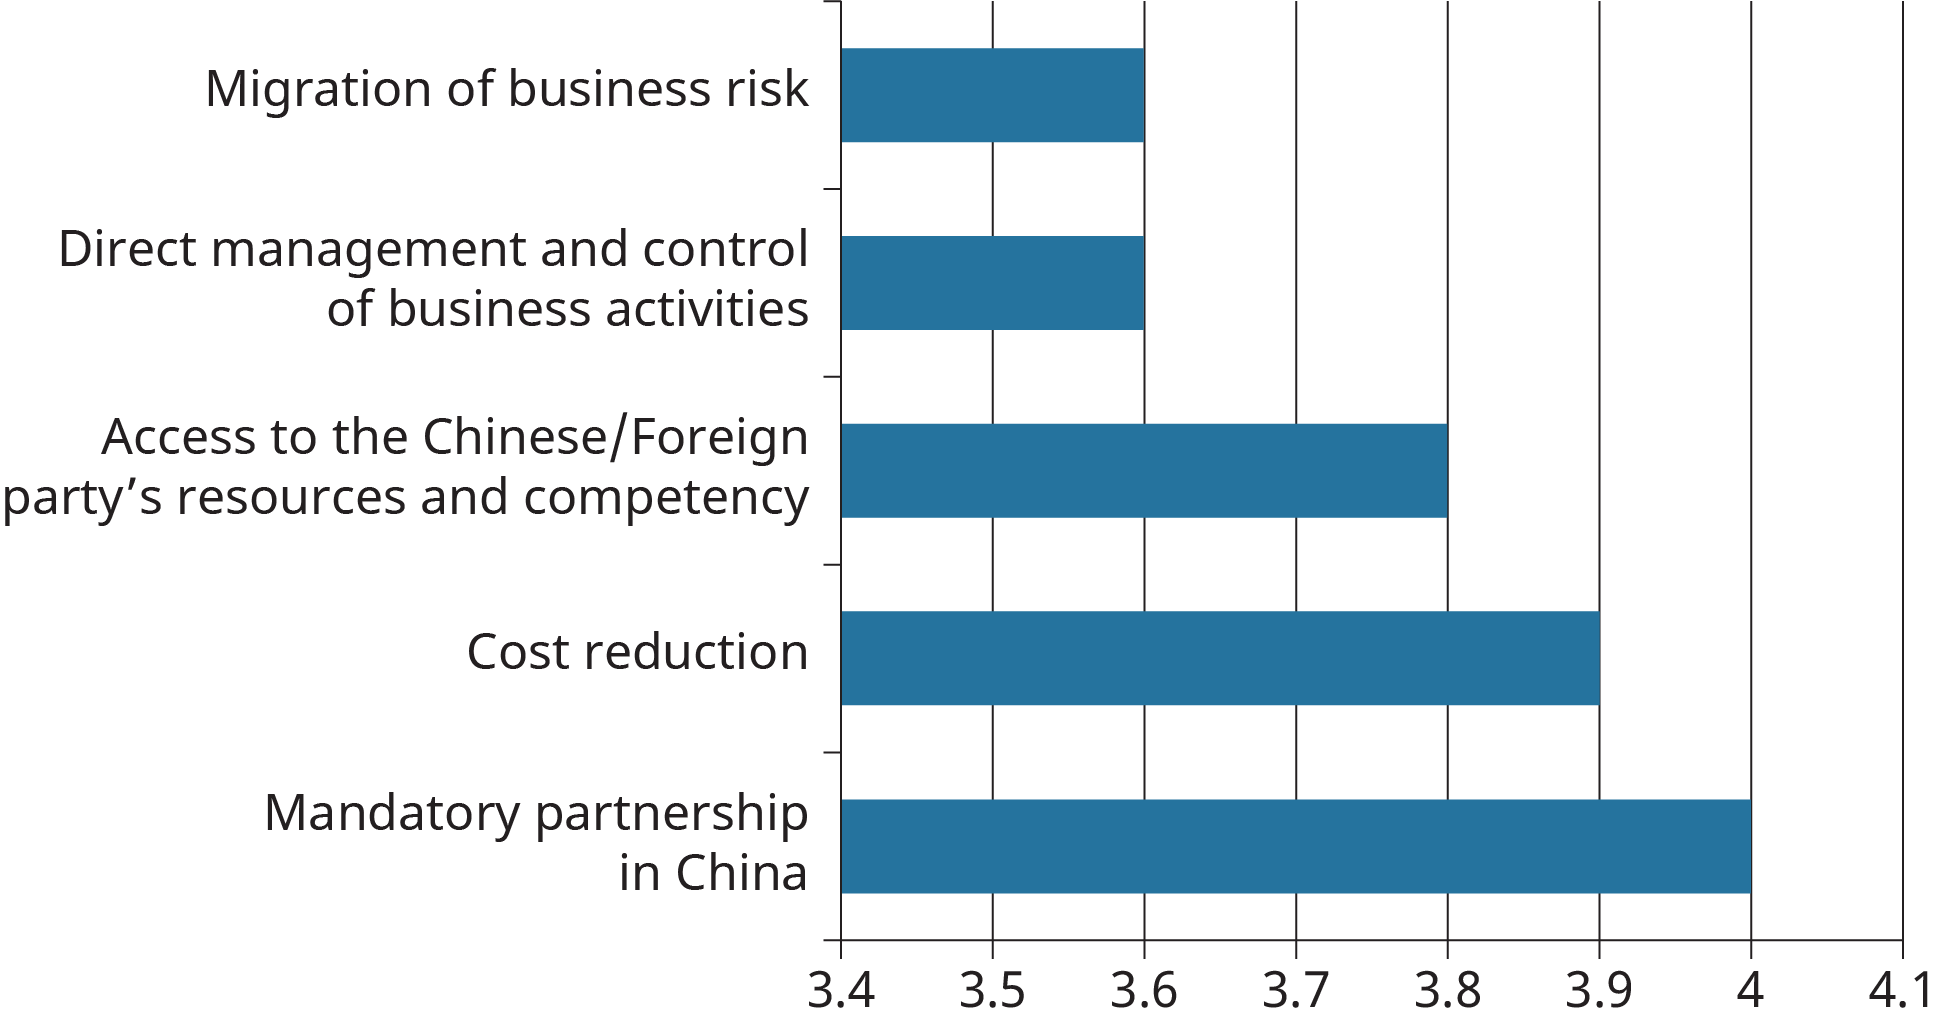 A bar graph shows the main benefits foreign companies expect to gain from strategic alliances.